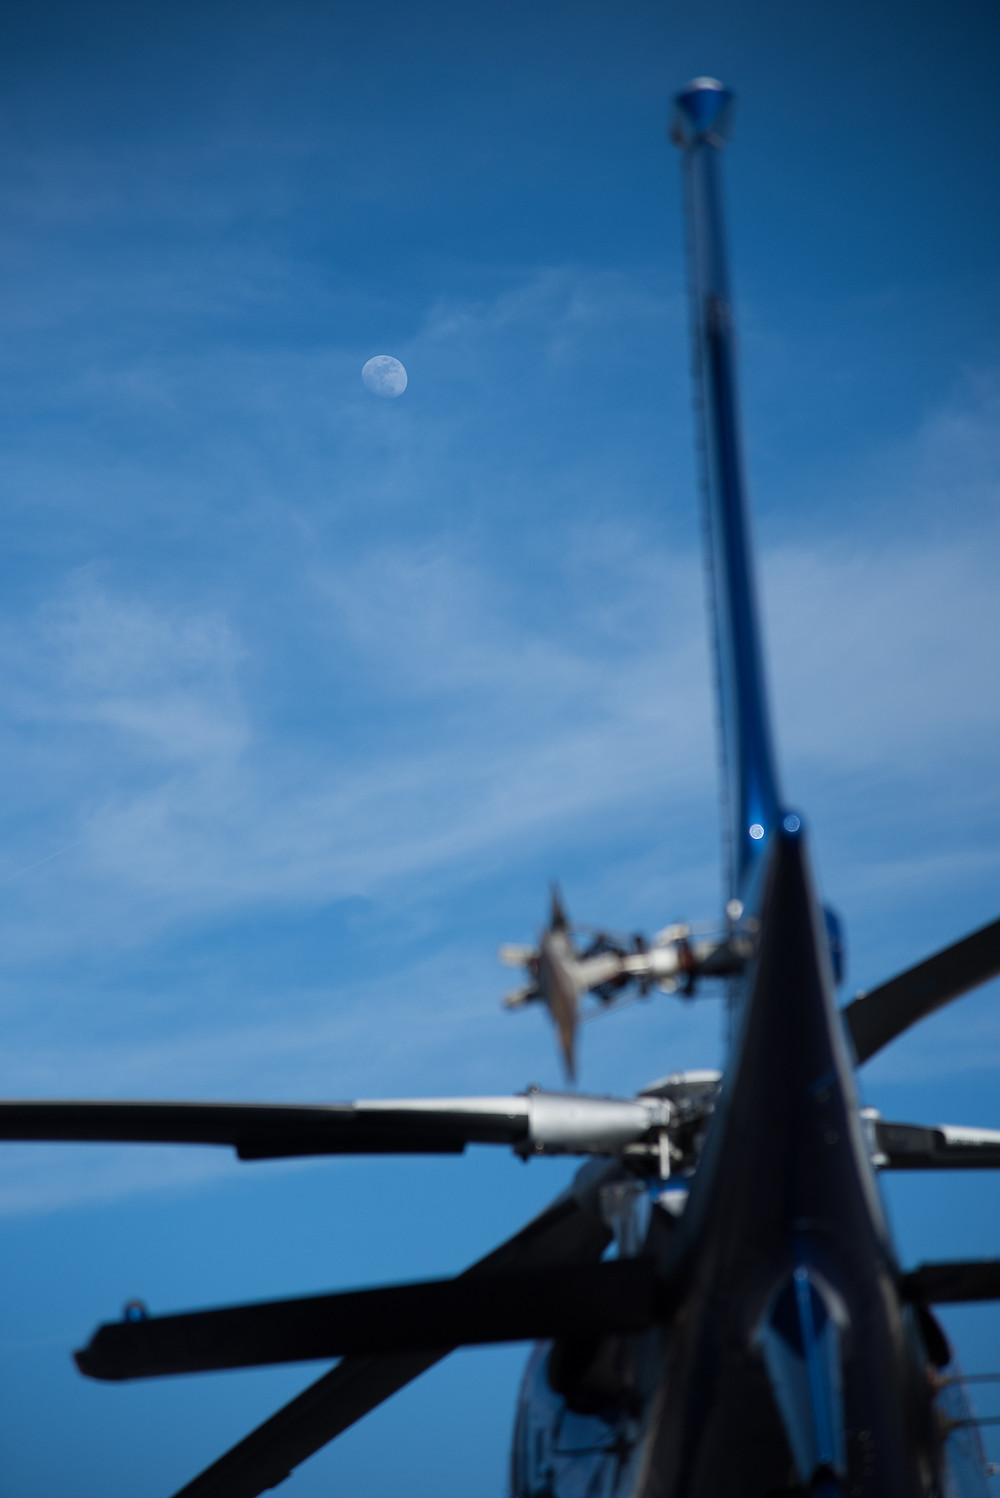 Moon over Augsta Helicopter against bright blue sky in Arkansas